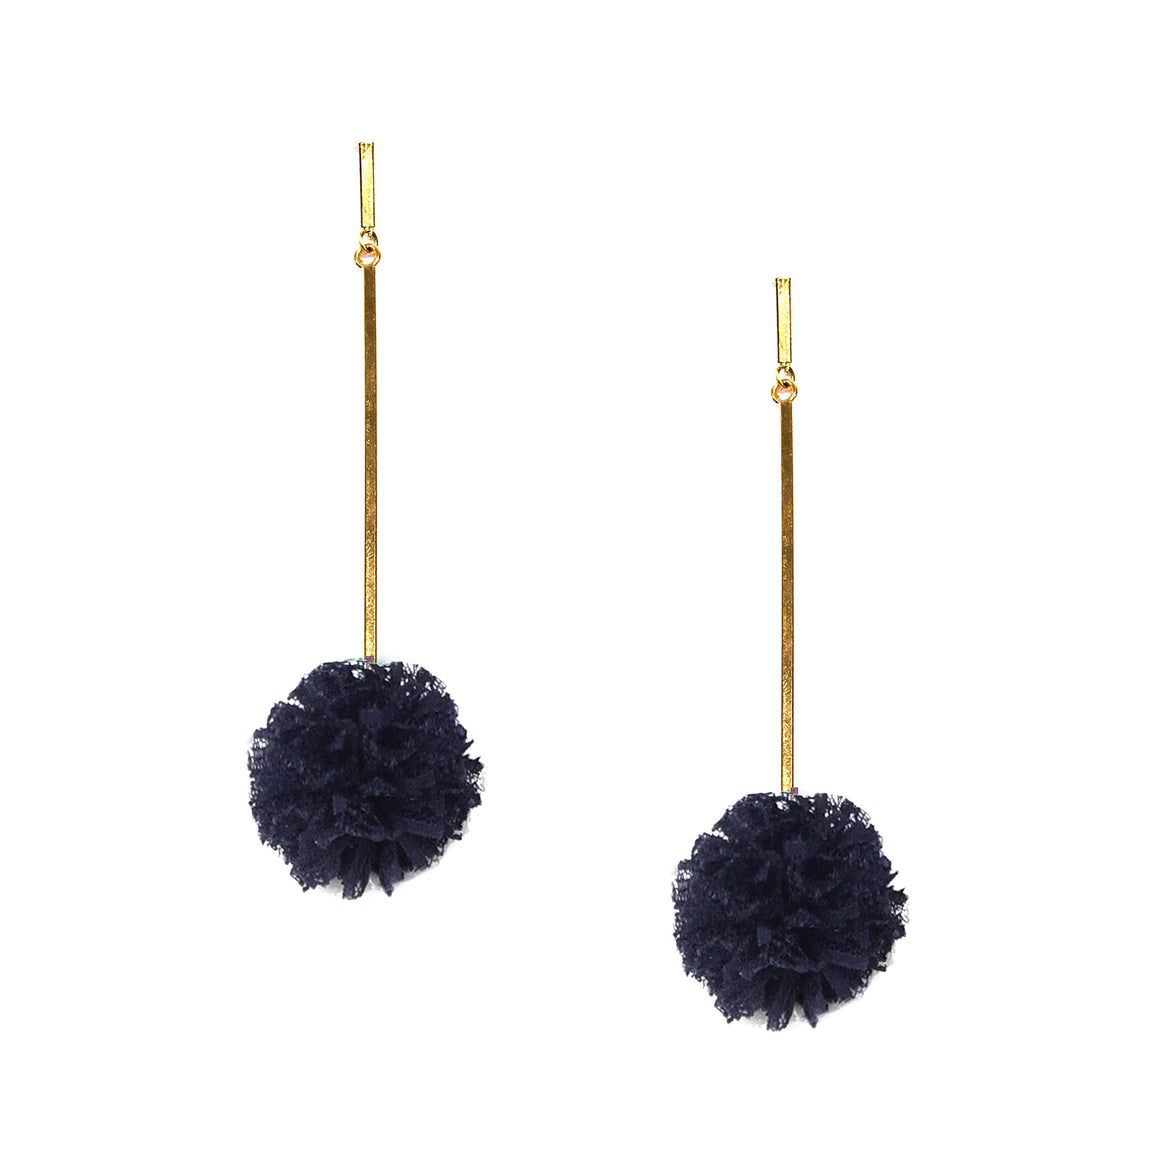 "Navy 1"" Lace Pom Pom Earrings, Earrings, Tuleste, Tuleste"